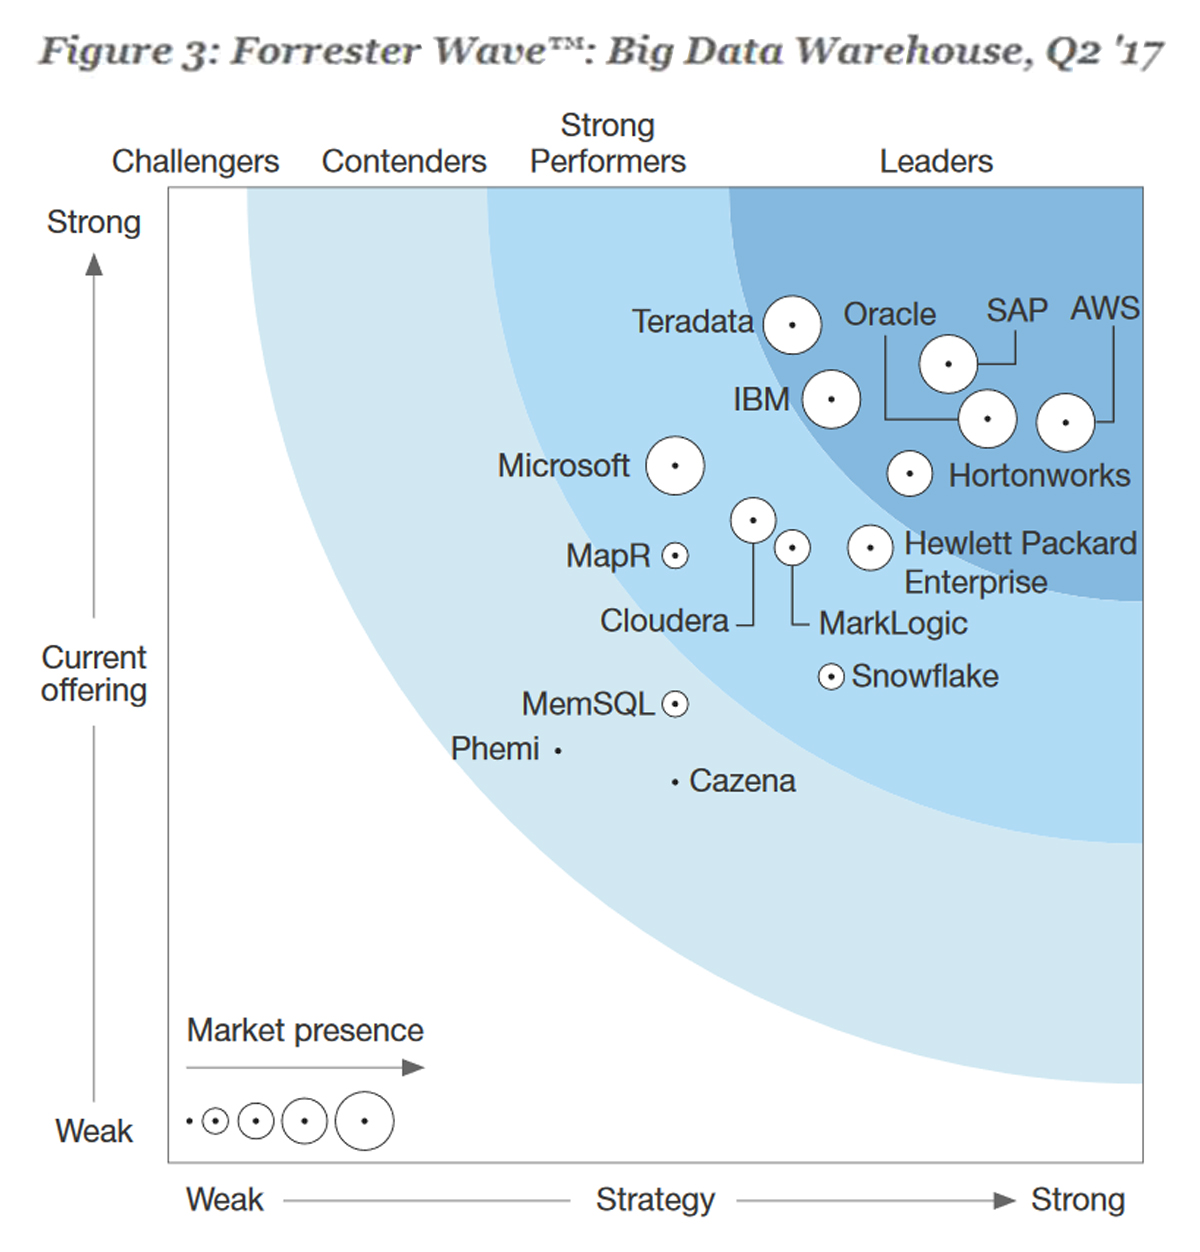 The Forrester Wave™: Big Data Warehouse, secondo trimestre 2017